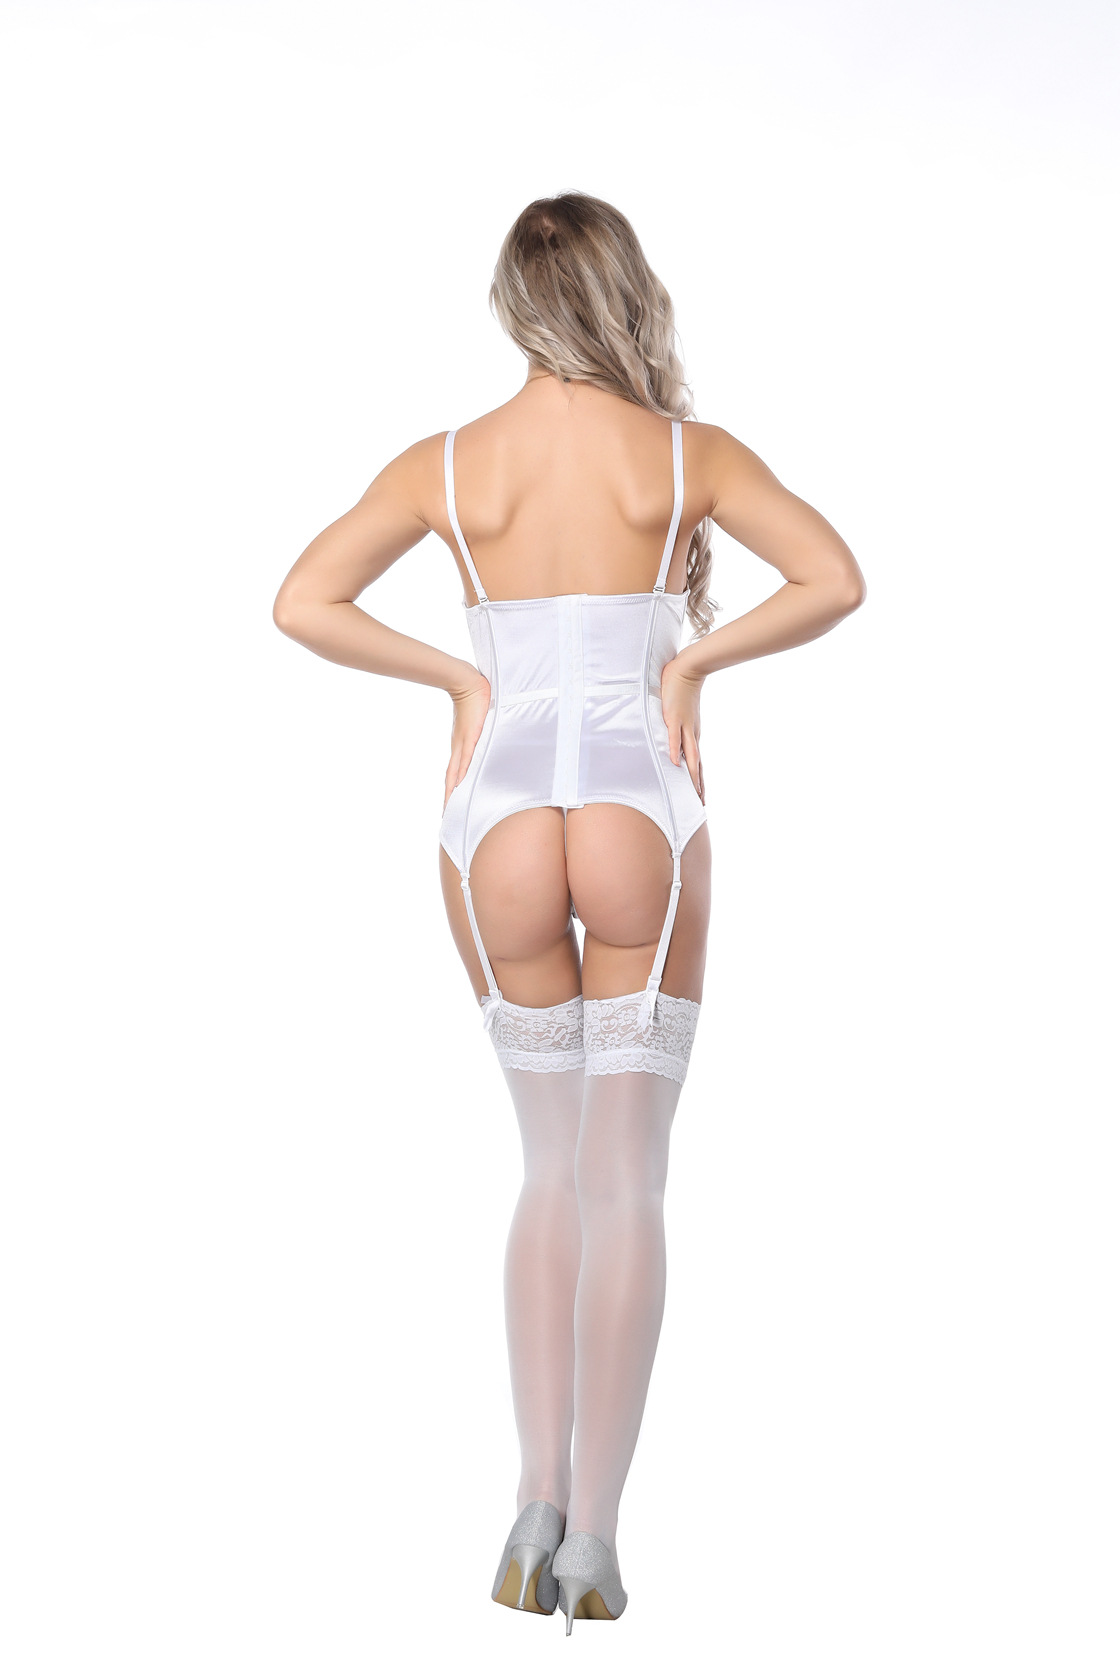 F3247-2  Bustier Sexy Corset Lingerie Girdle Lace Cincher with Garter Belt